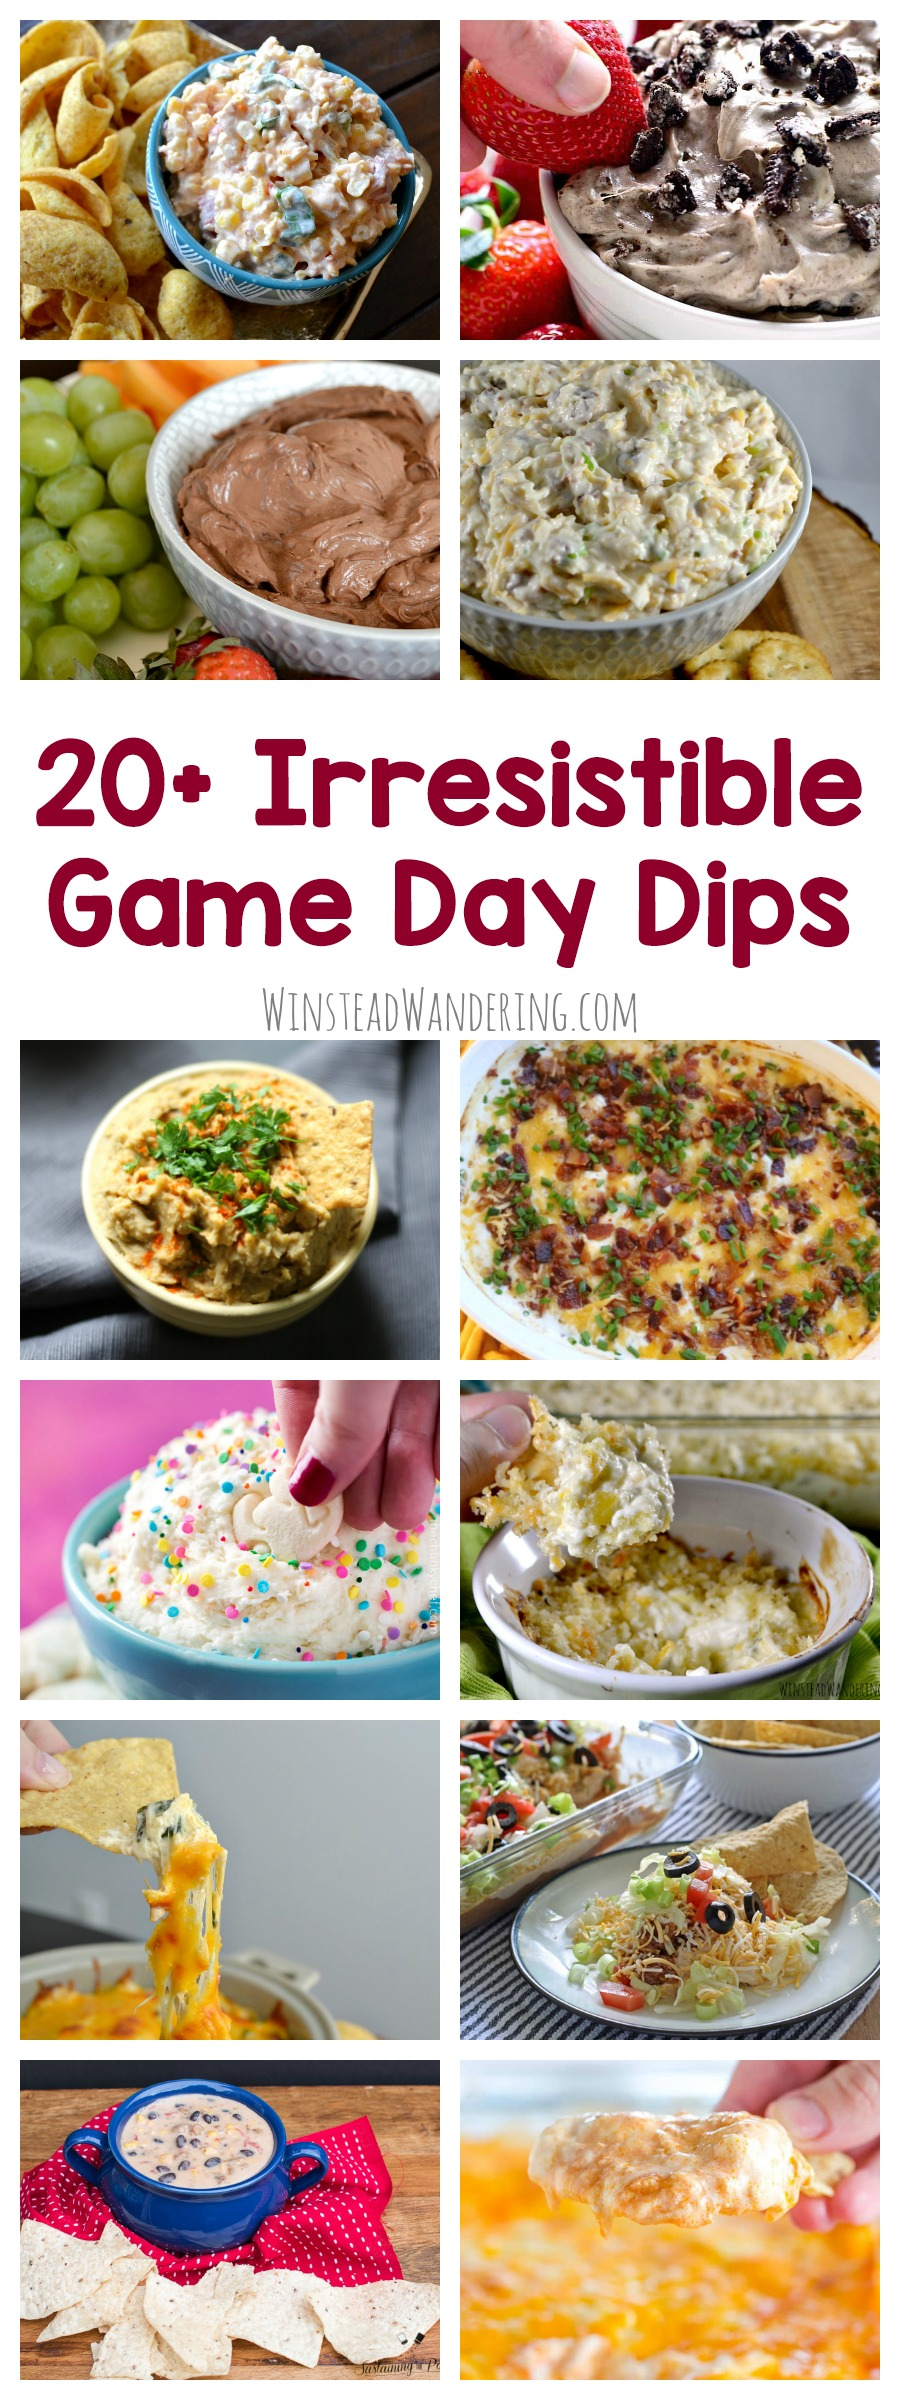 Kick back with friends and family, put the big game on TV, and enjoy one - or a bunch - of these irresistible game day dip recipes.